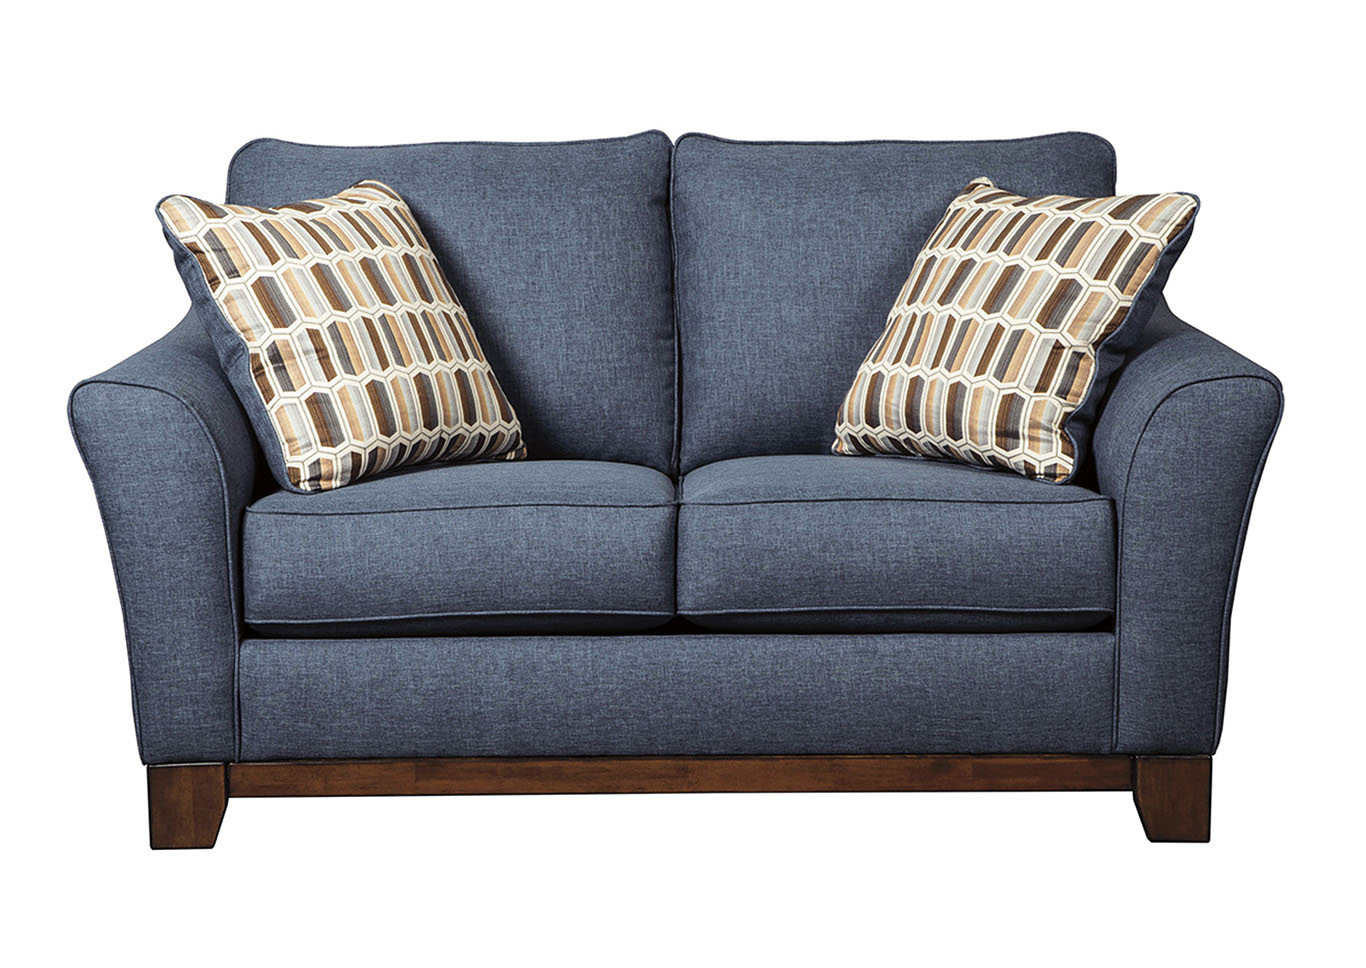 Oak Furniture Liquidators Janley Denim Loveseat